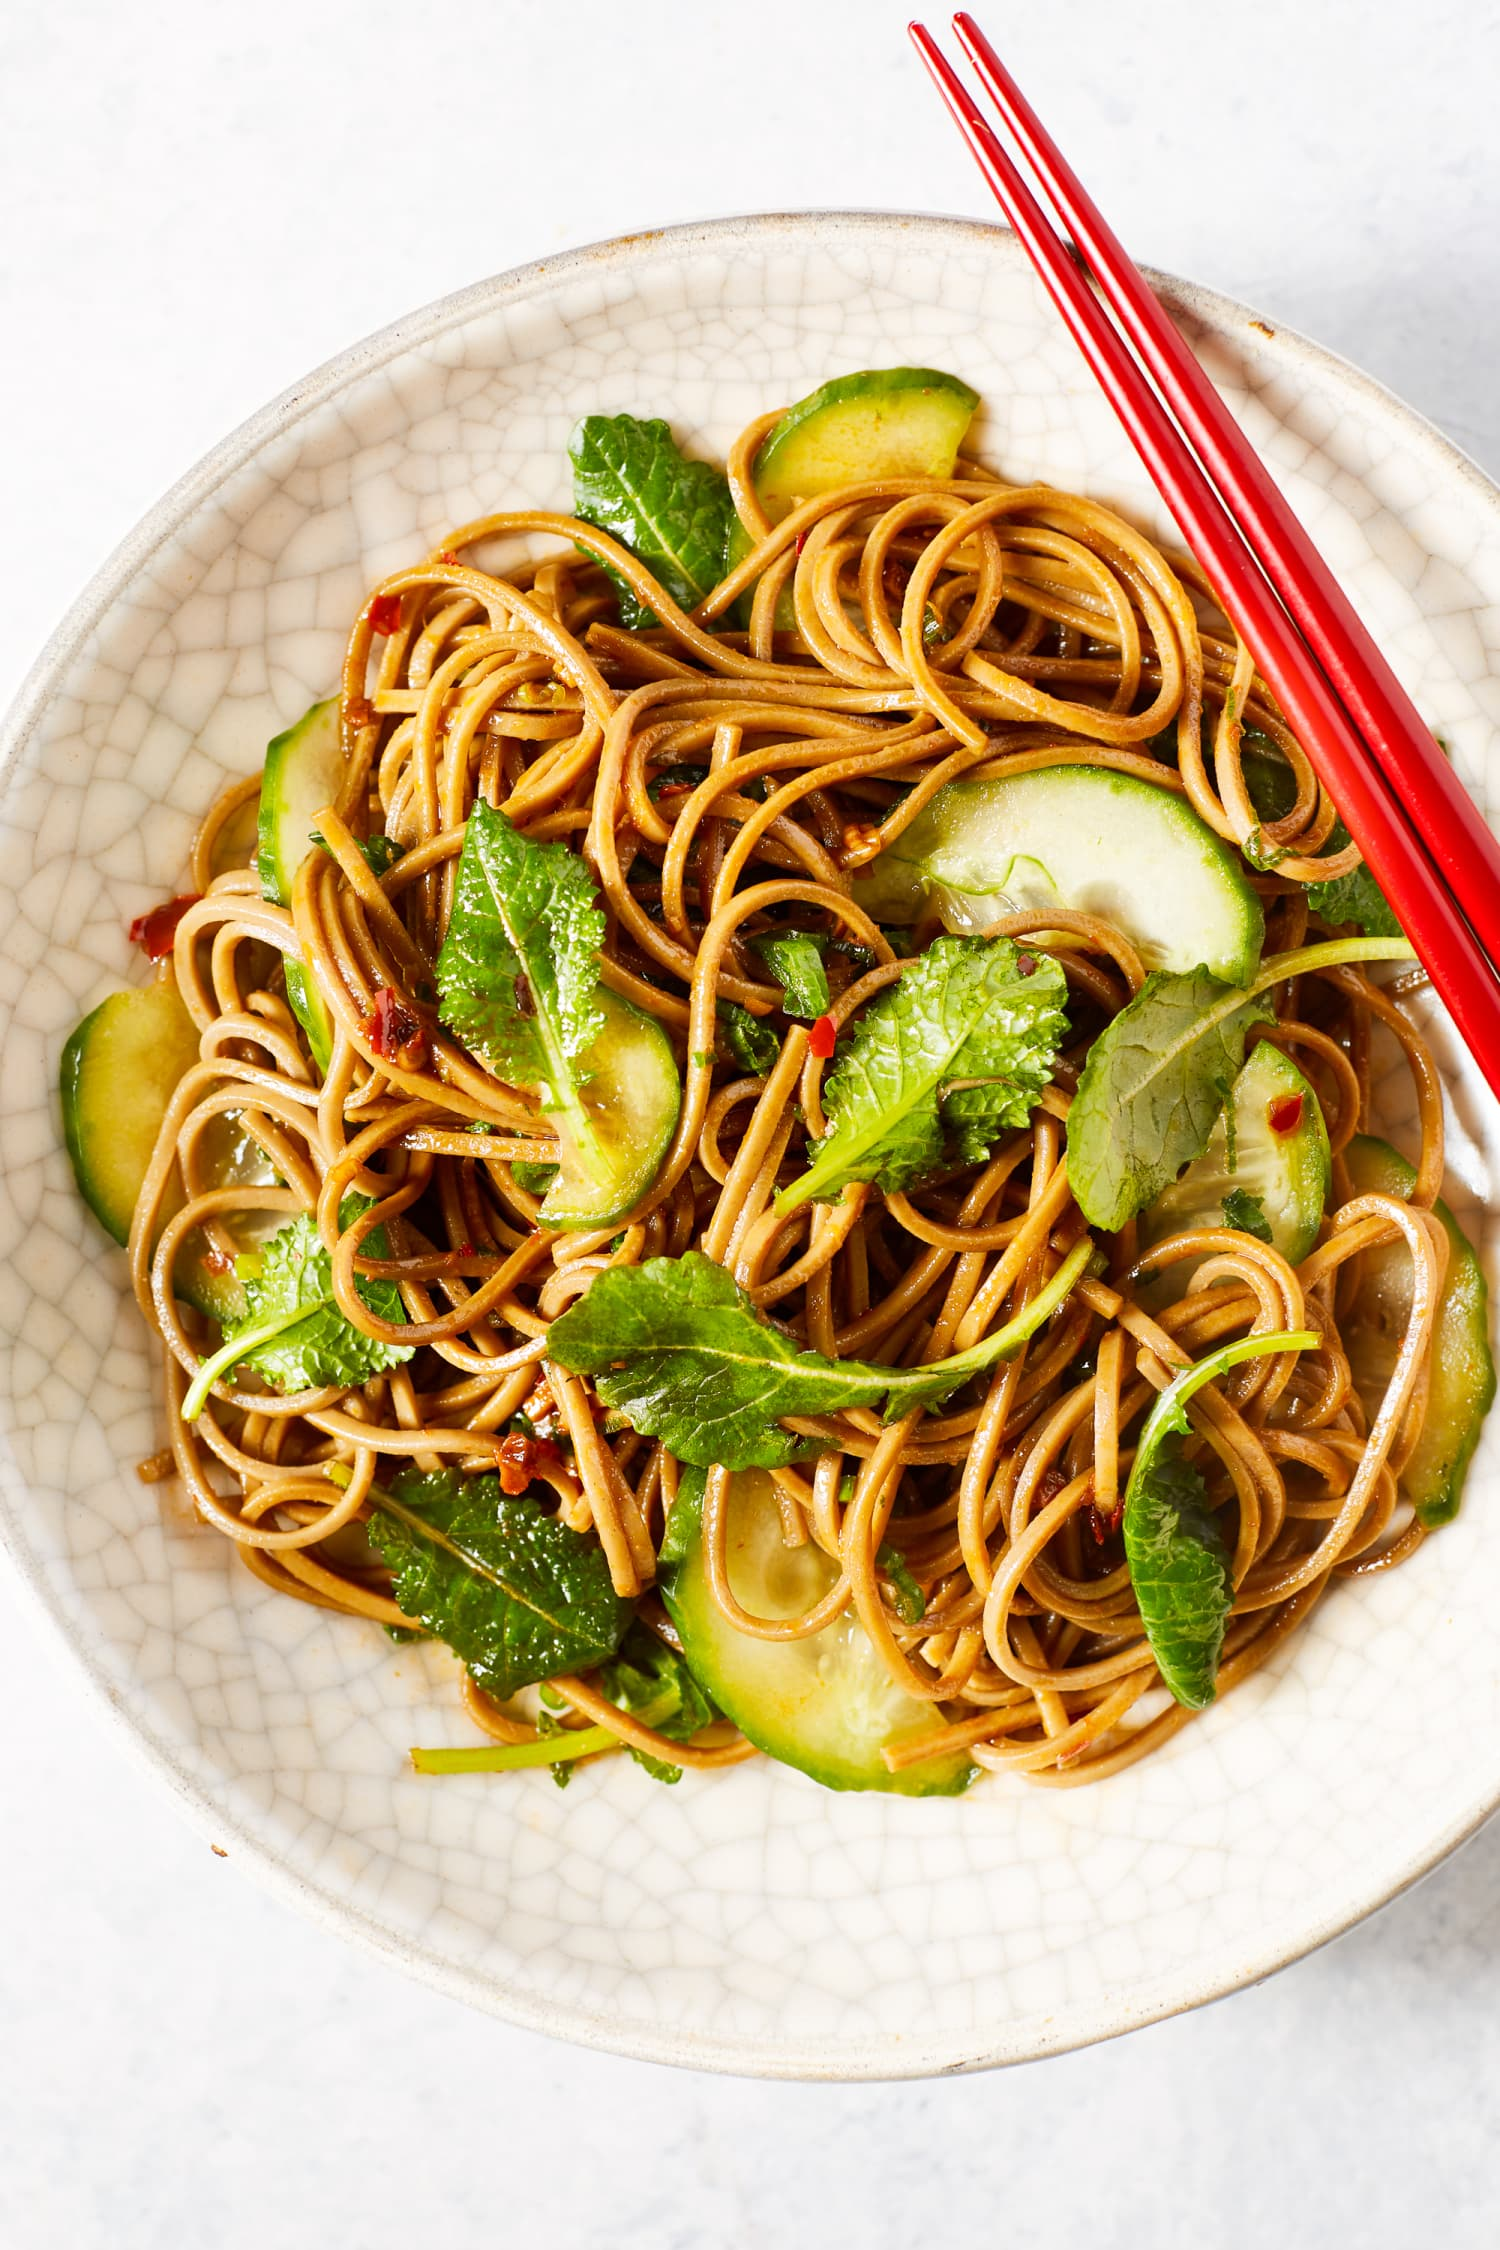 10 Heart-Healthy Dinners for Busy Cooks